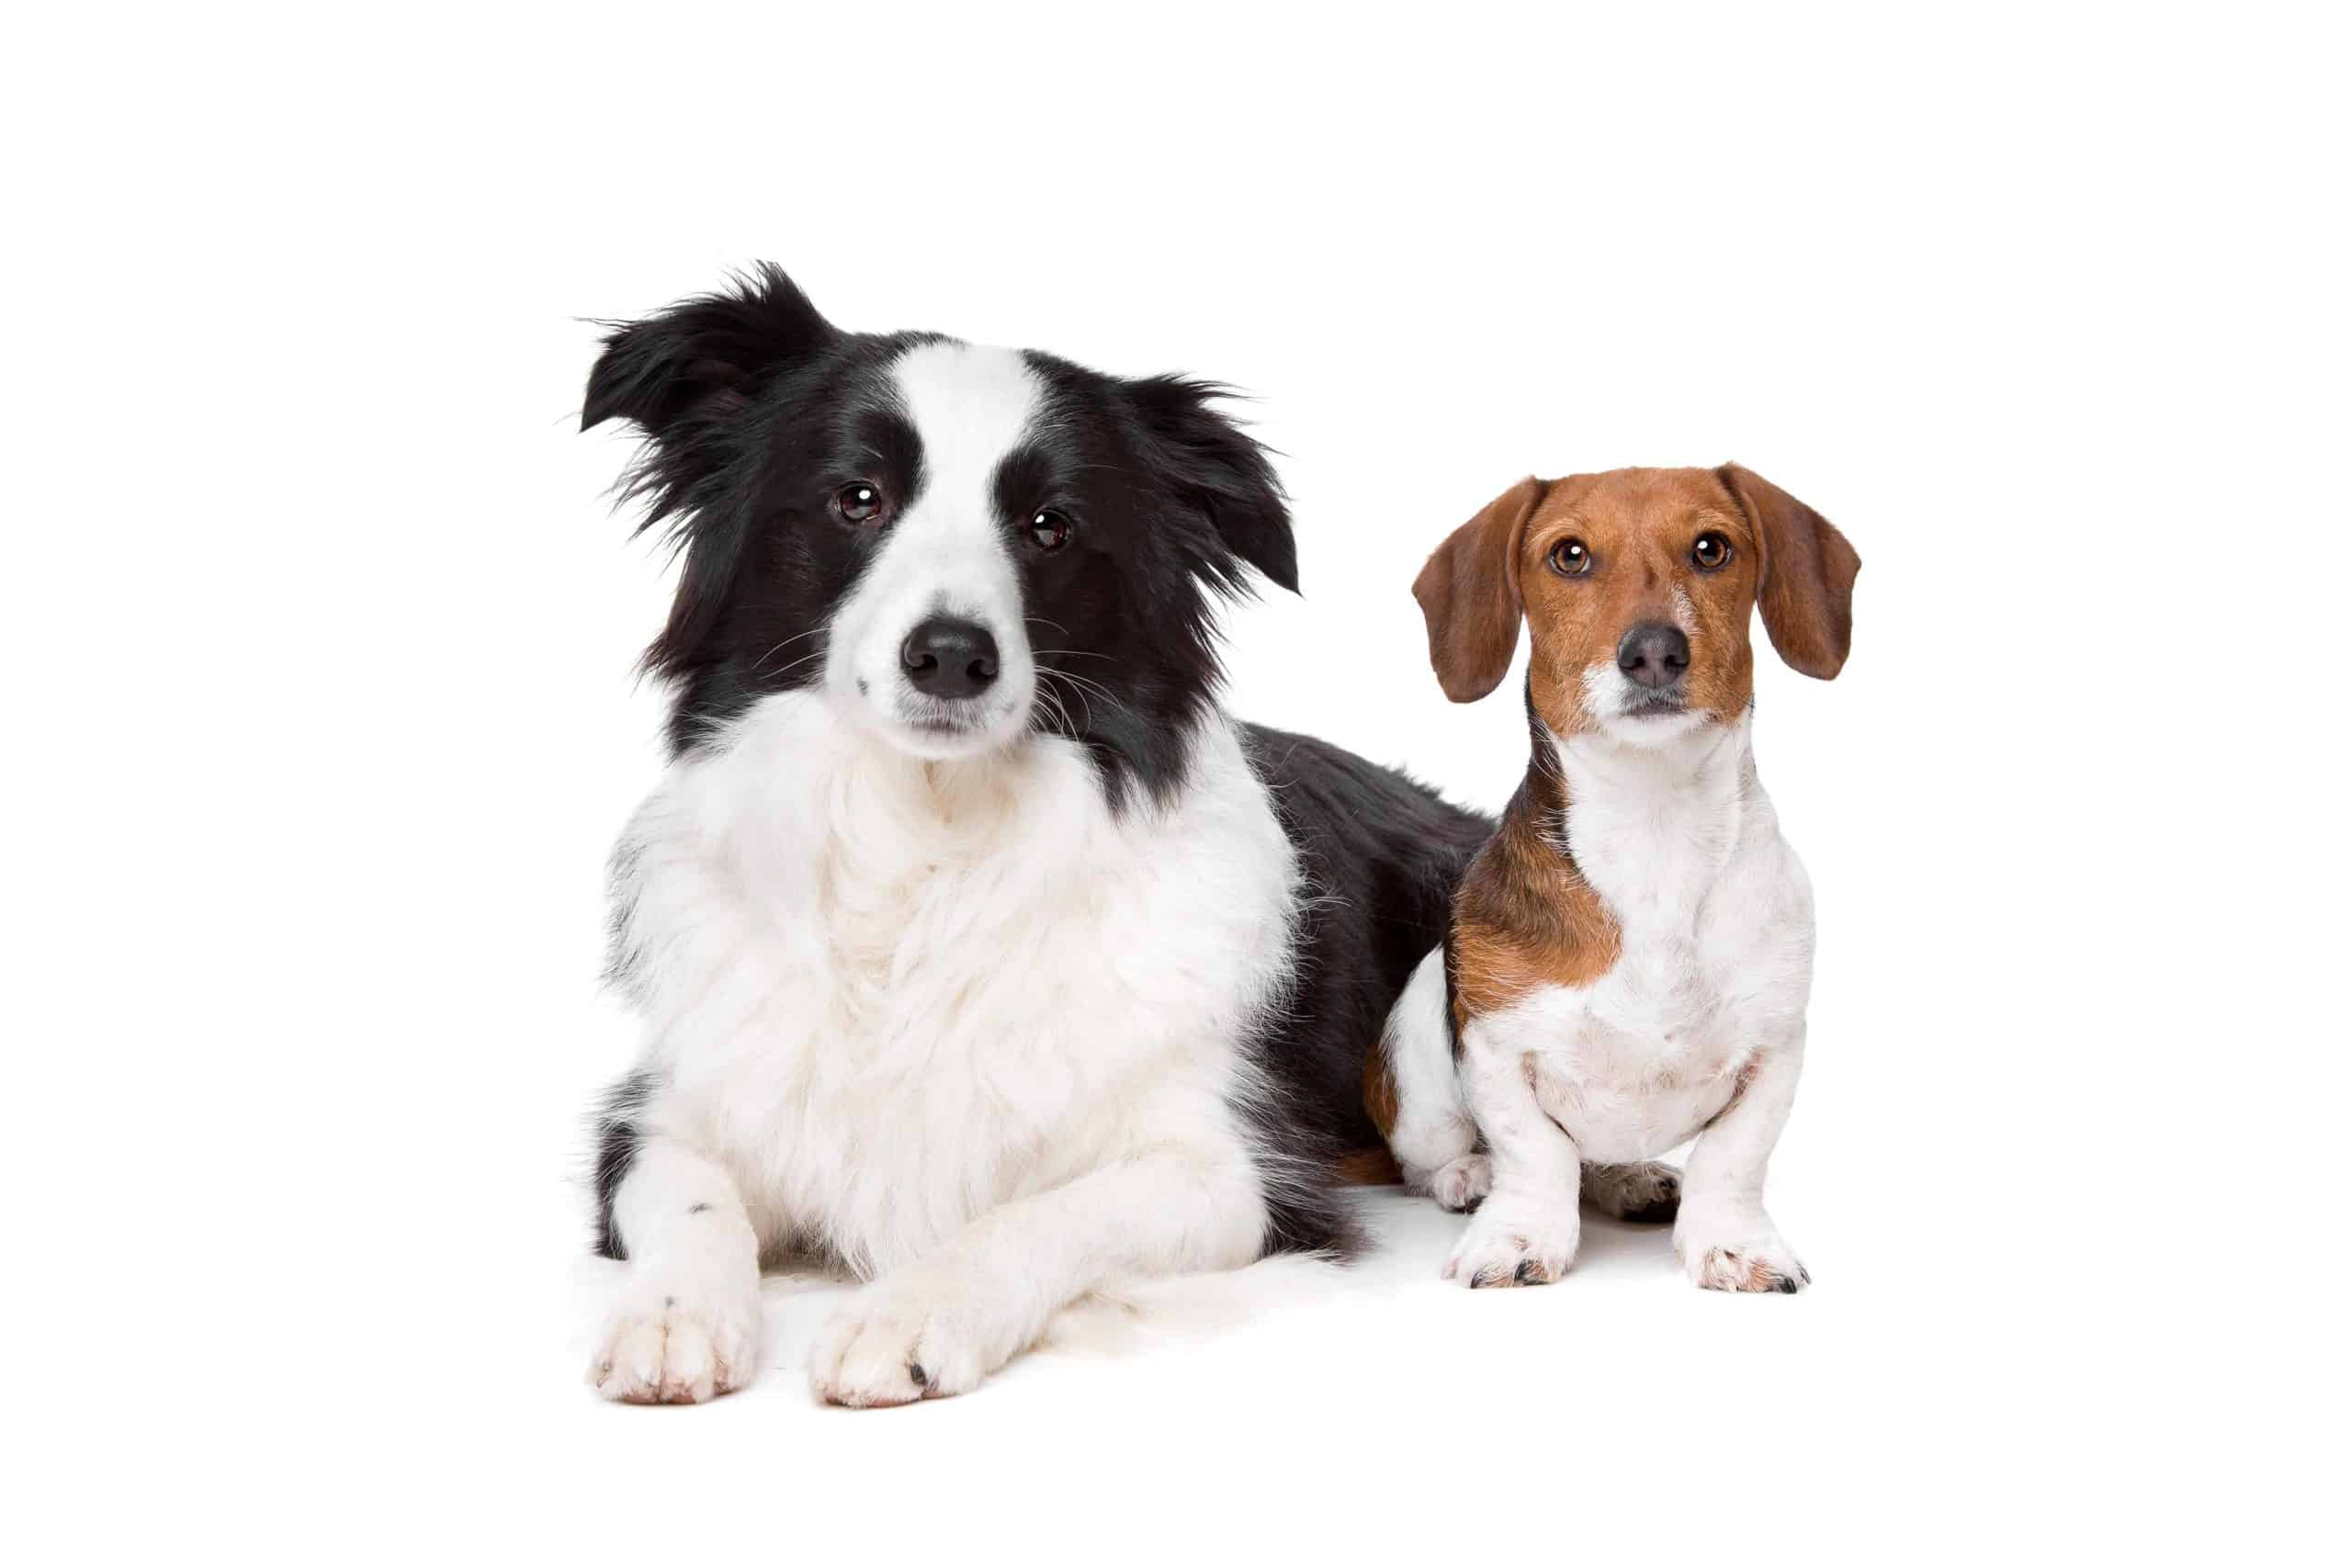 Border Collie and Dachshund pictured with white background. A Border Collie-Dachshund mix can resemble either the Border Collie, the Dachshund, or even both parents.